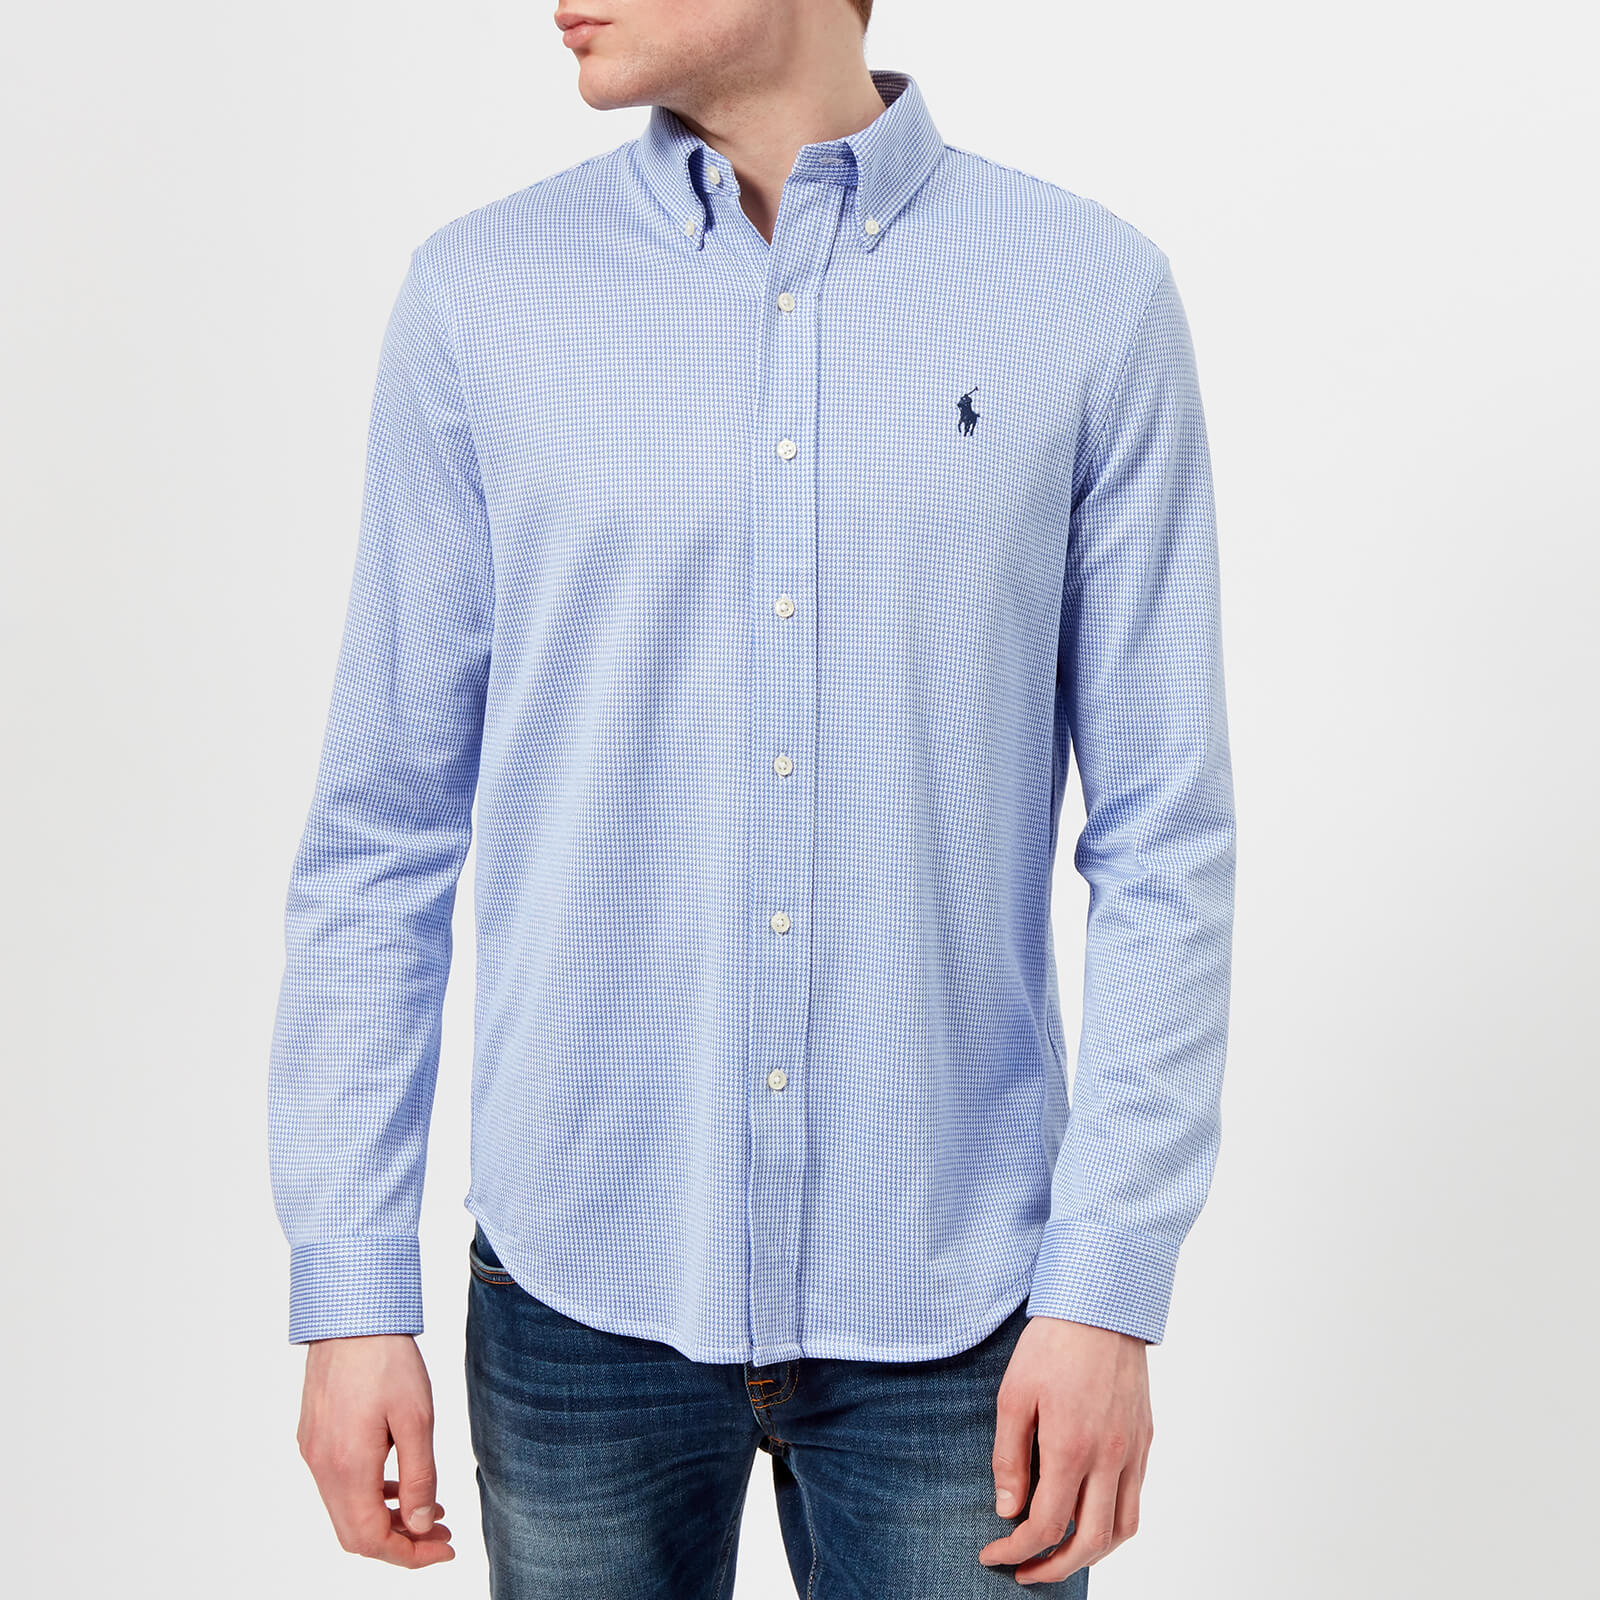 a7af239e Polo Ralph Lauren Men's Long Sleeve Oxford Pique Shirt - Stratford  Blue/White - Free UK Delivery over £50